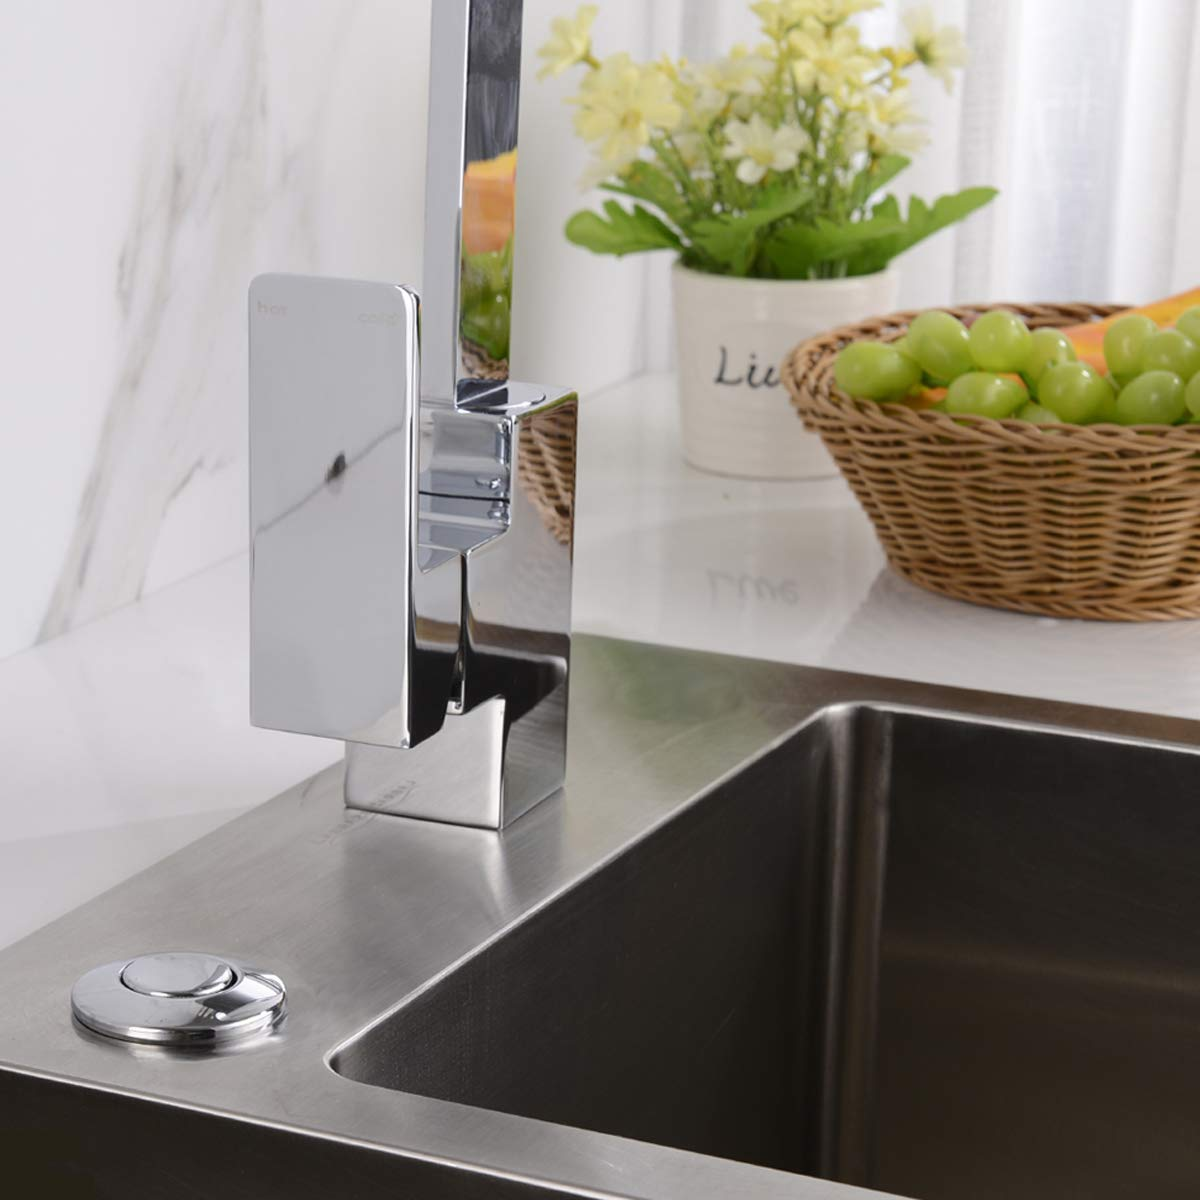 Polished Chrome BESTILL Single Outlet Sink Top Air Switch Kit for Garbage Disposal